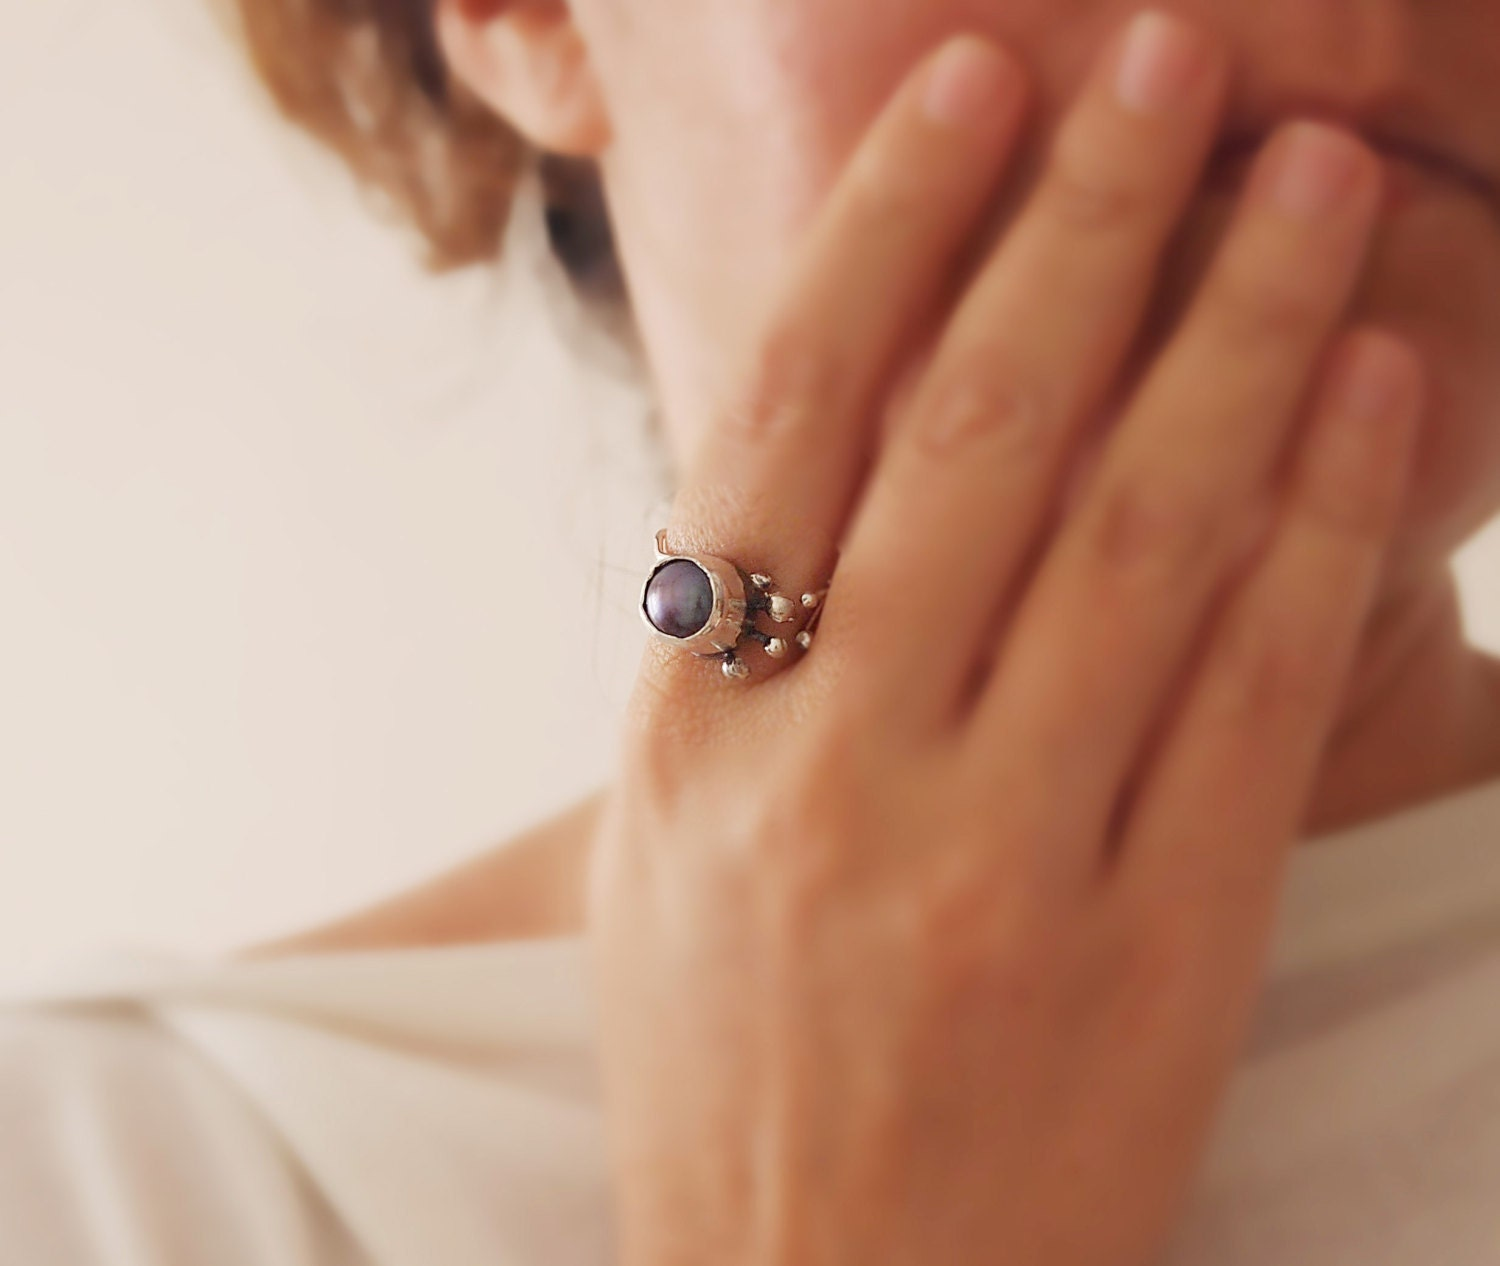 Black Pearl Ring - 925 in Silver - Modern Art Jewelry - Adjustable - Hands Collection- Ready to Ship - serpilguneysu